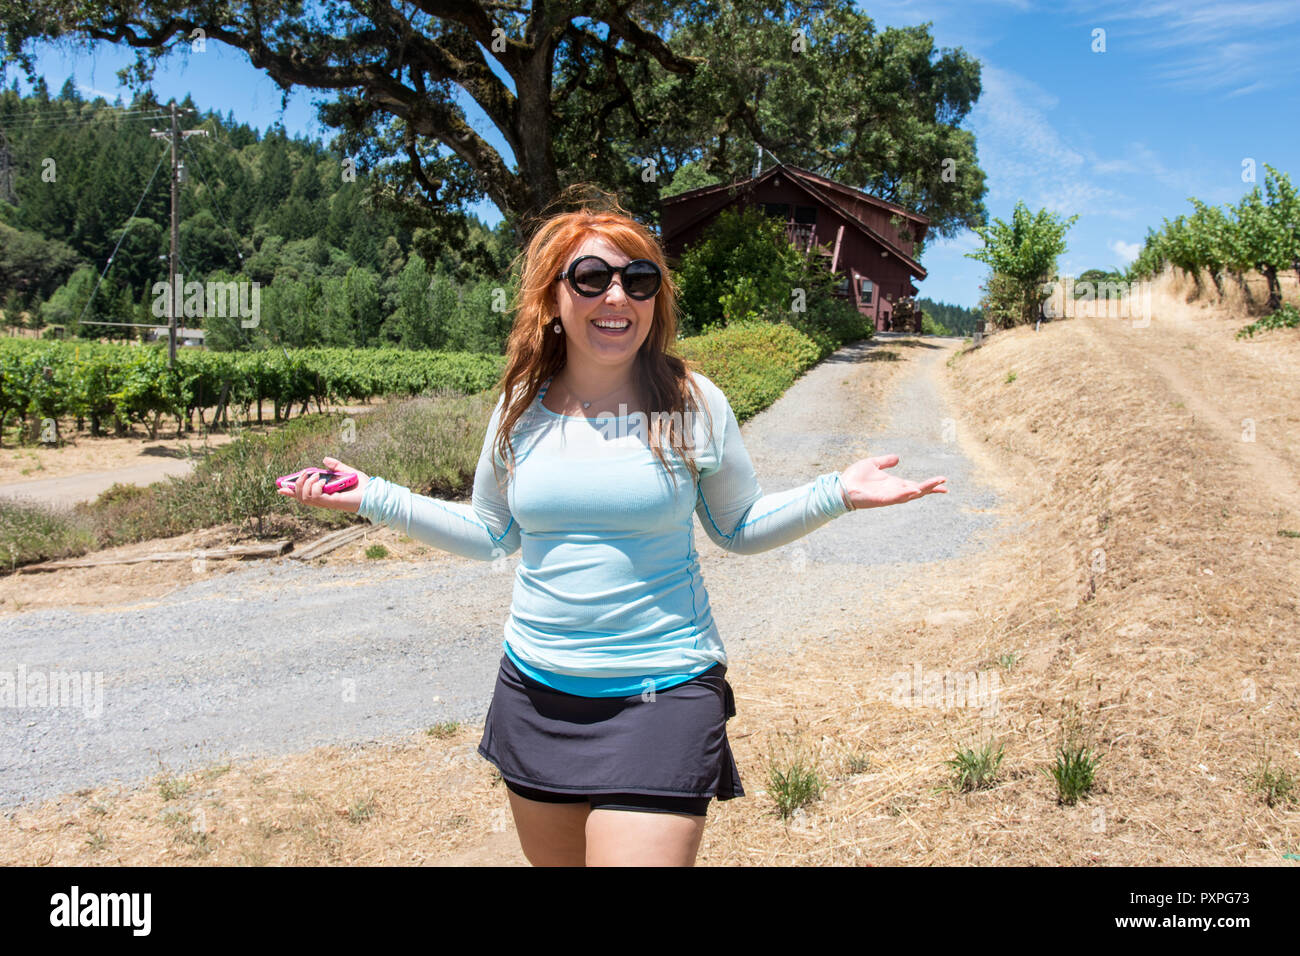 Red headed ginger adult female (20s) millennial holds out her arms in happiness while walking on a dirt trail. Smiling and happy, holding generic smar - Stock Image